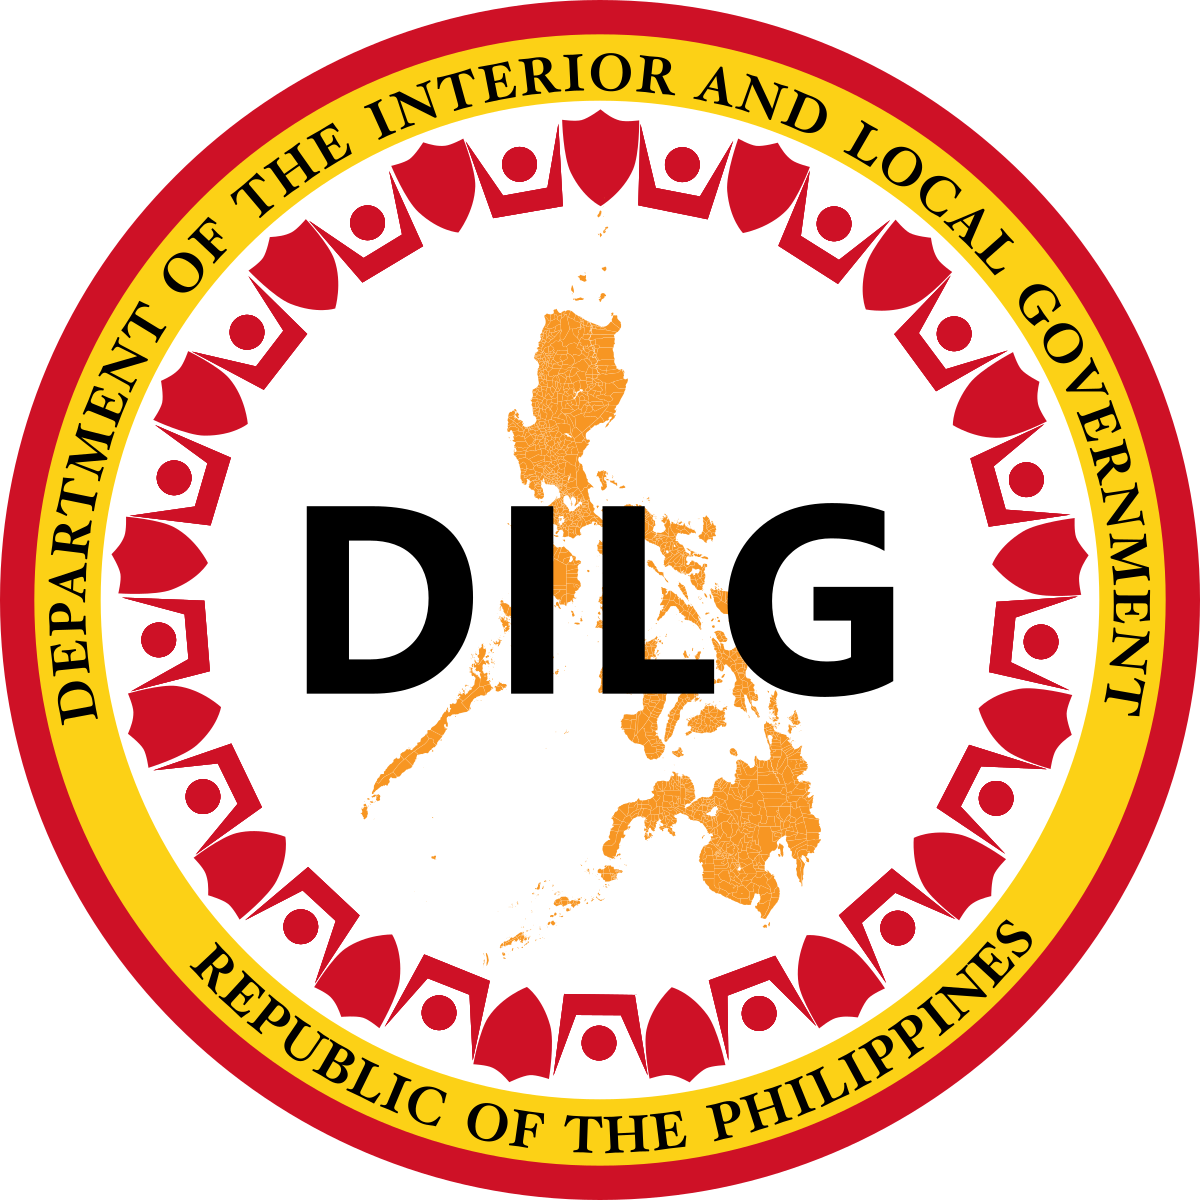 Secretary of the Interior and Local Government (Philippines.